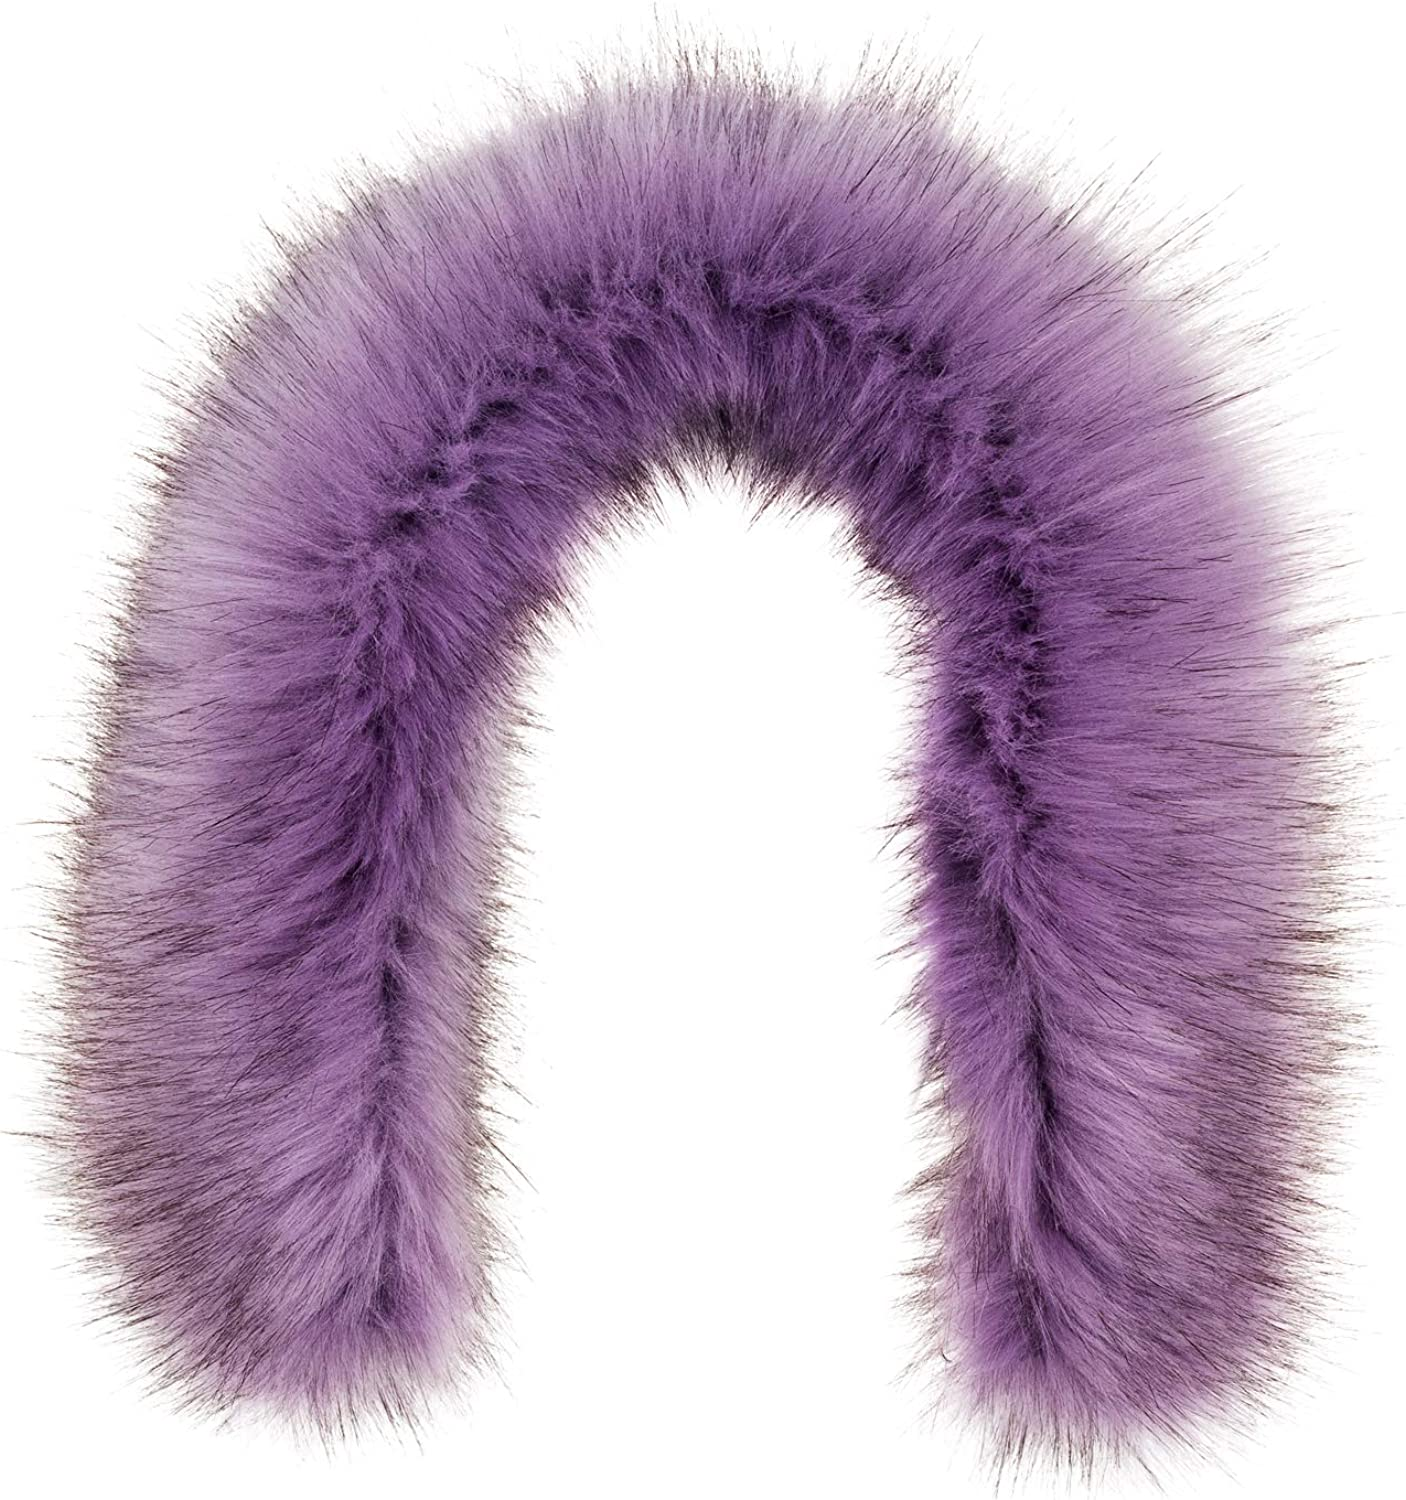 Futrzane Faux Fur Trim For Hood Replacement Buttons Included Like Real Fur